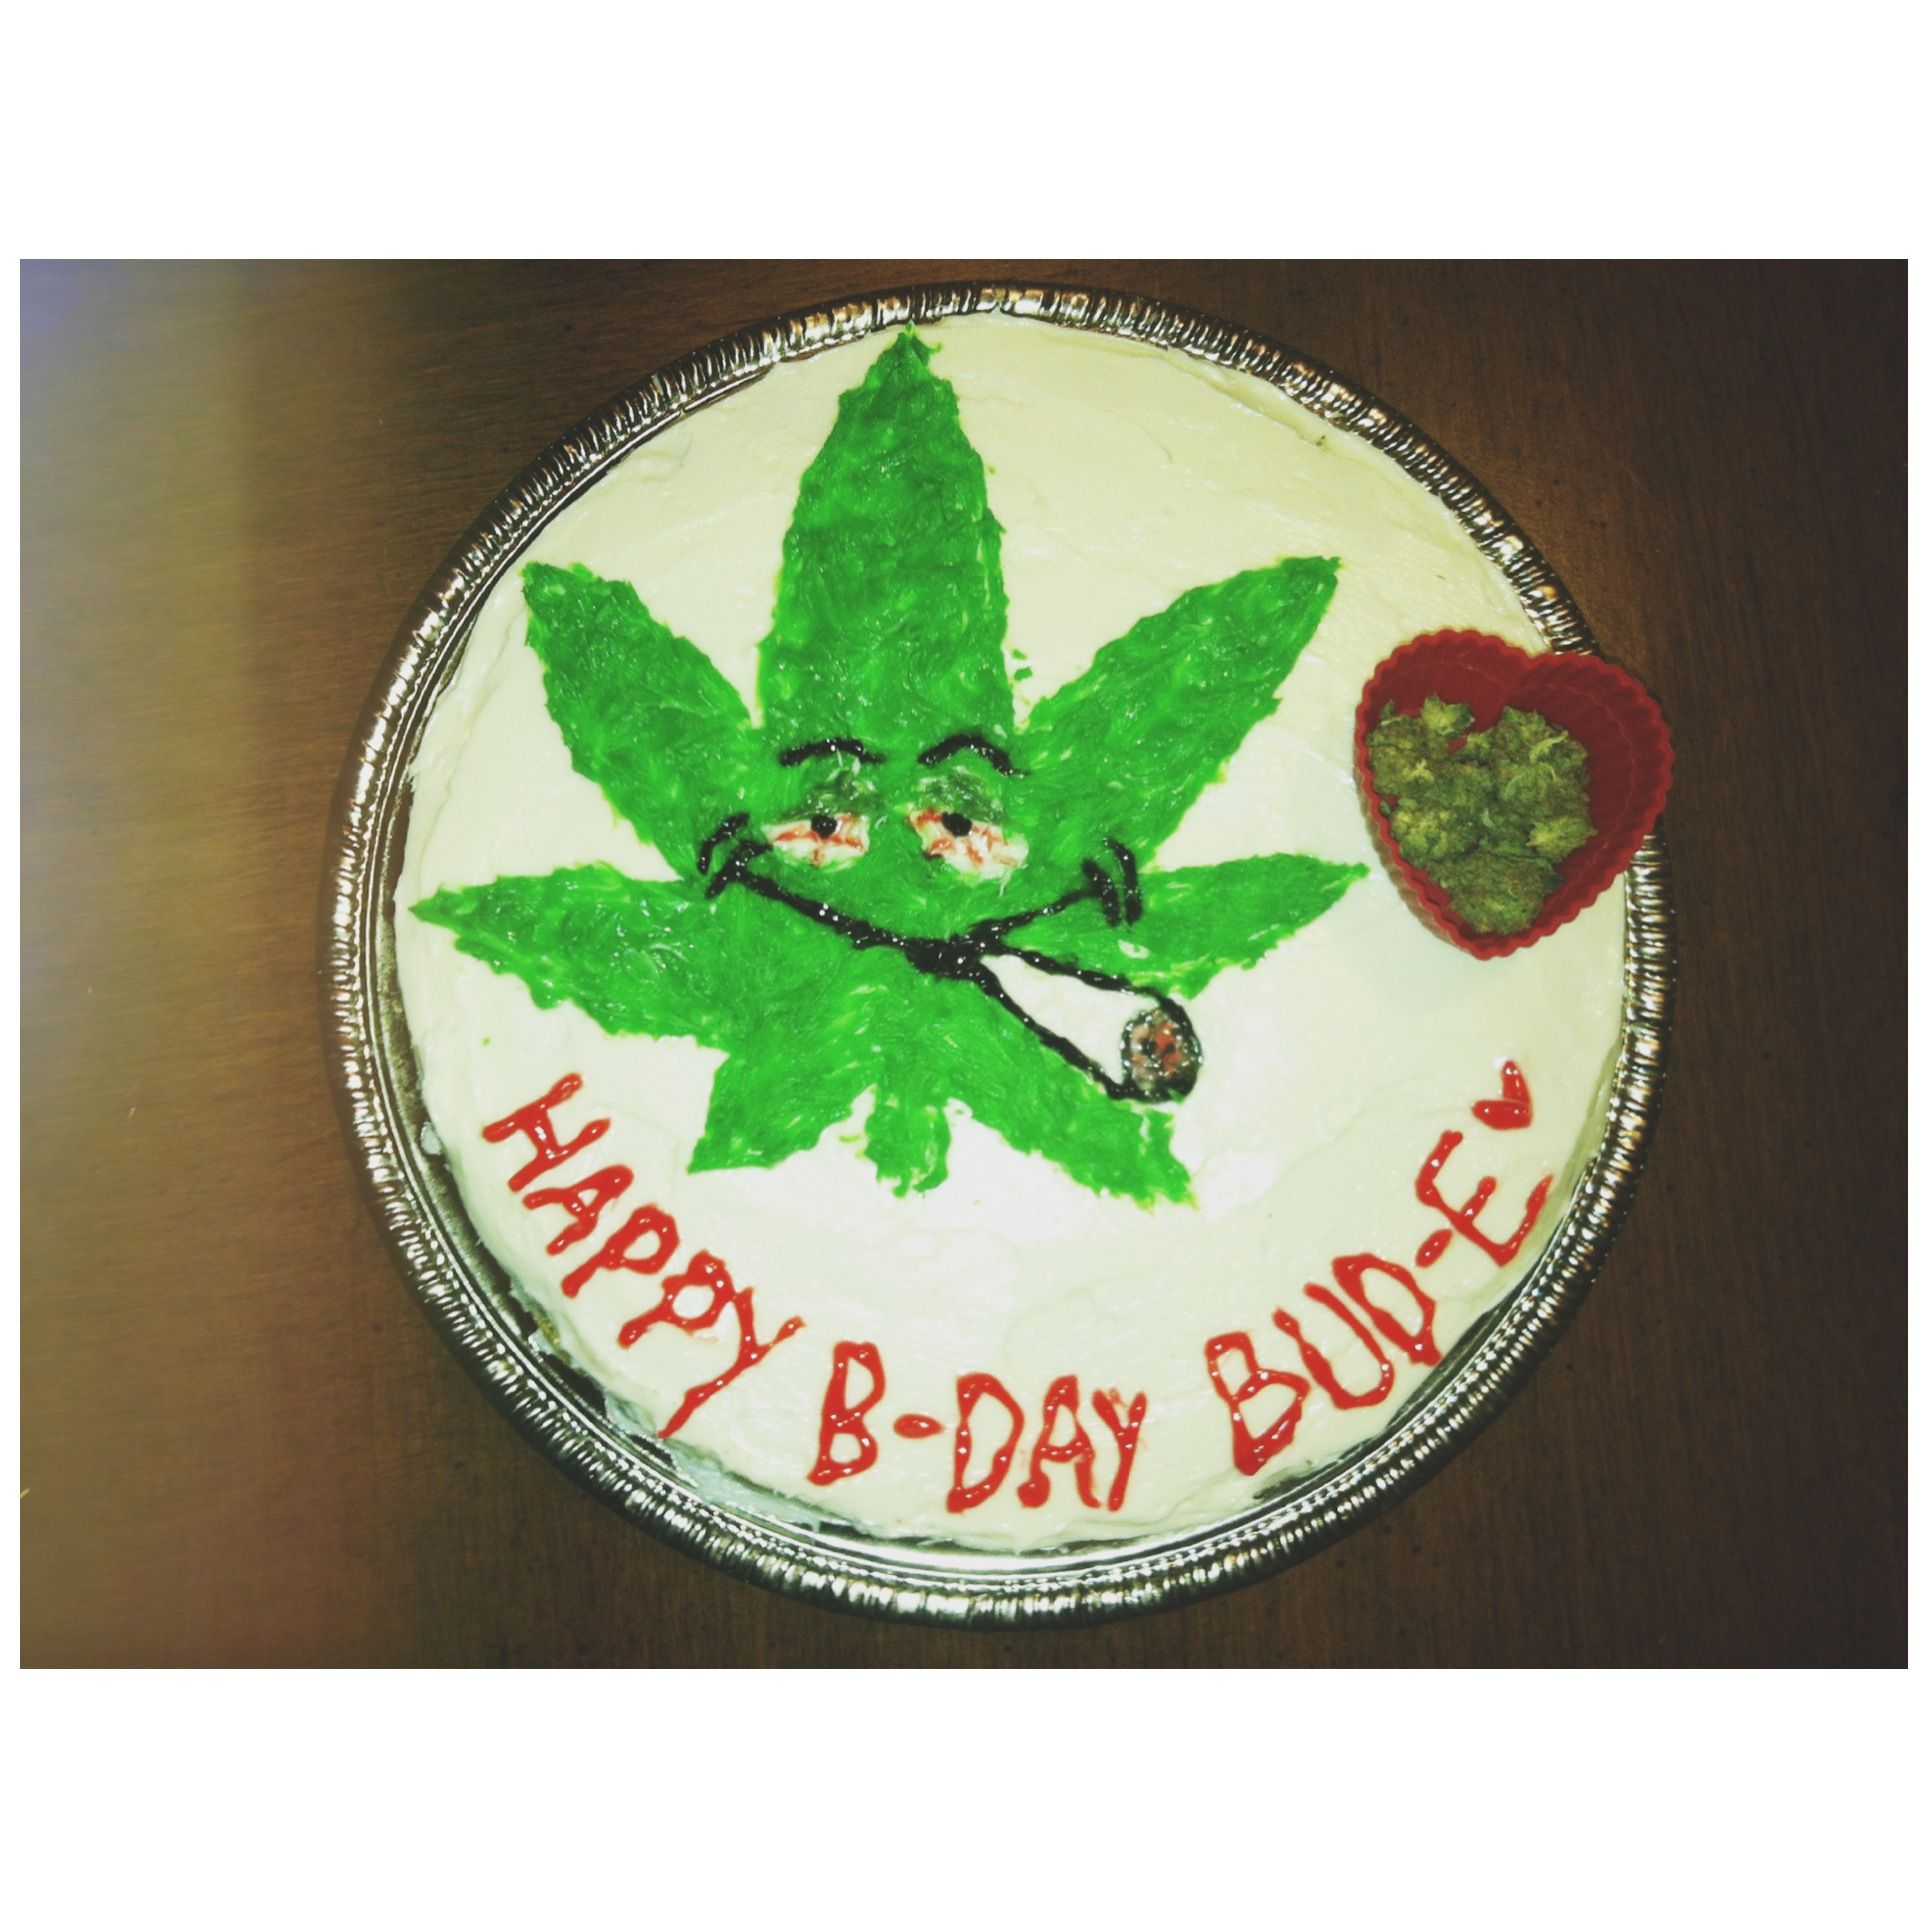 Homemade weed birthday cake I made Cakes Pinterest Birthday